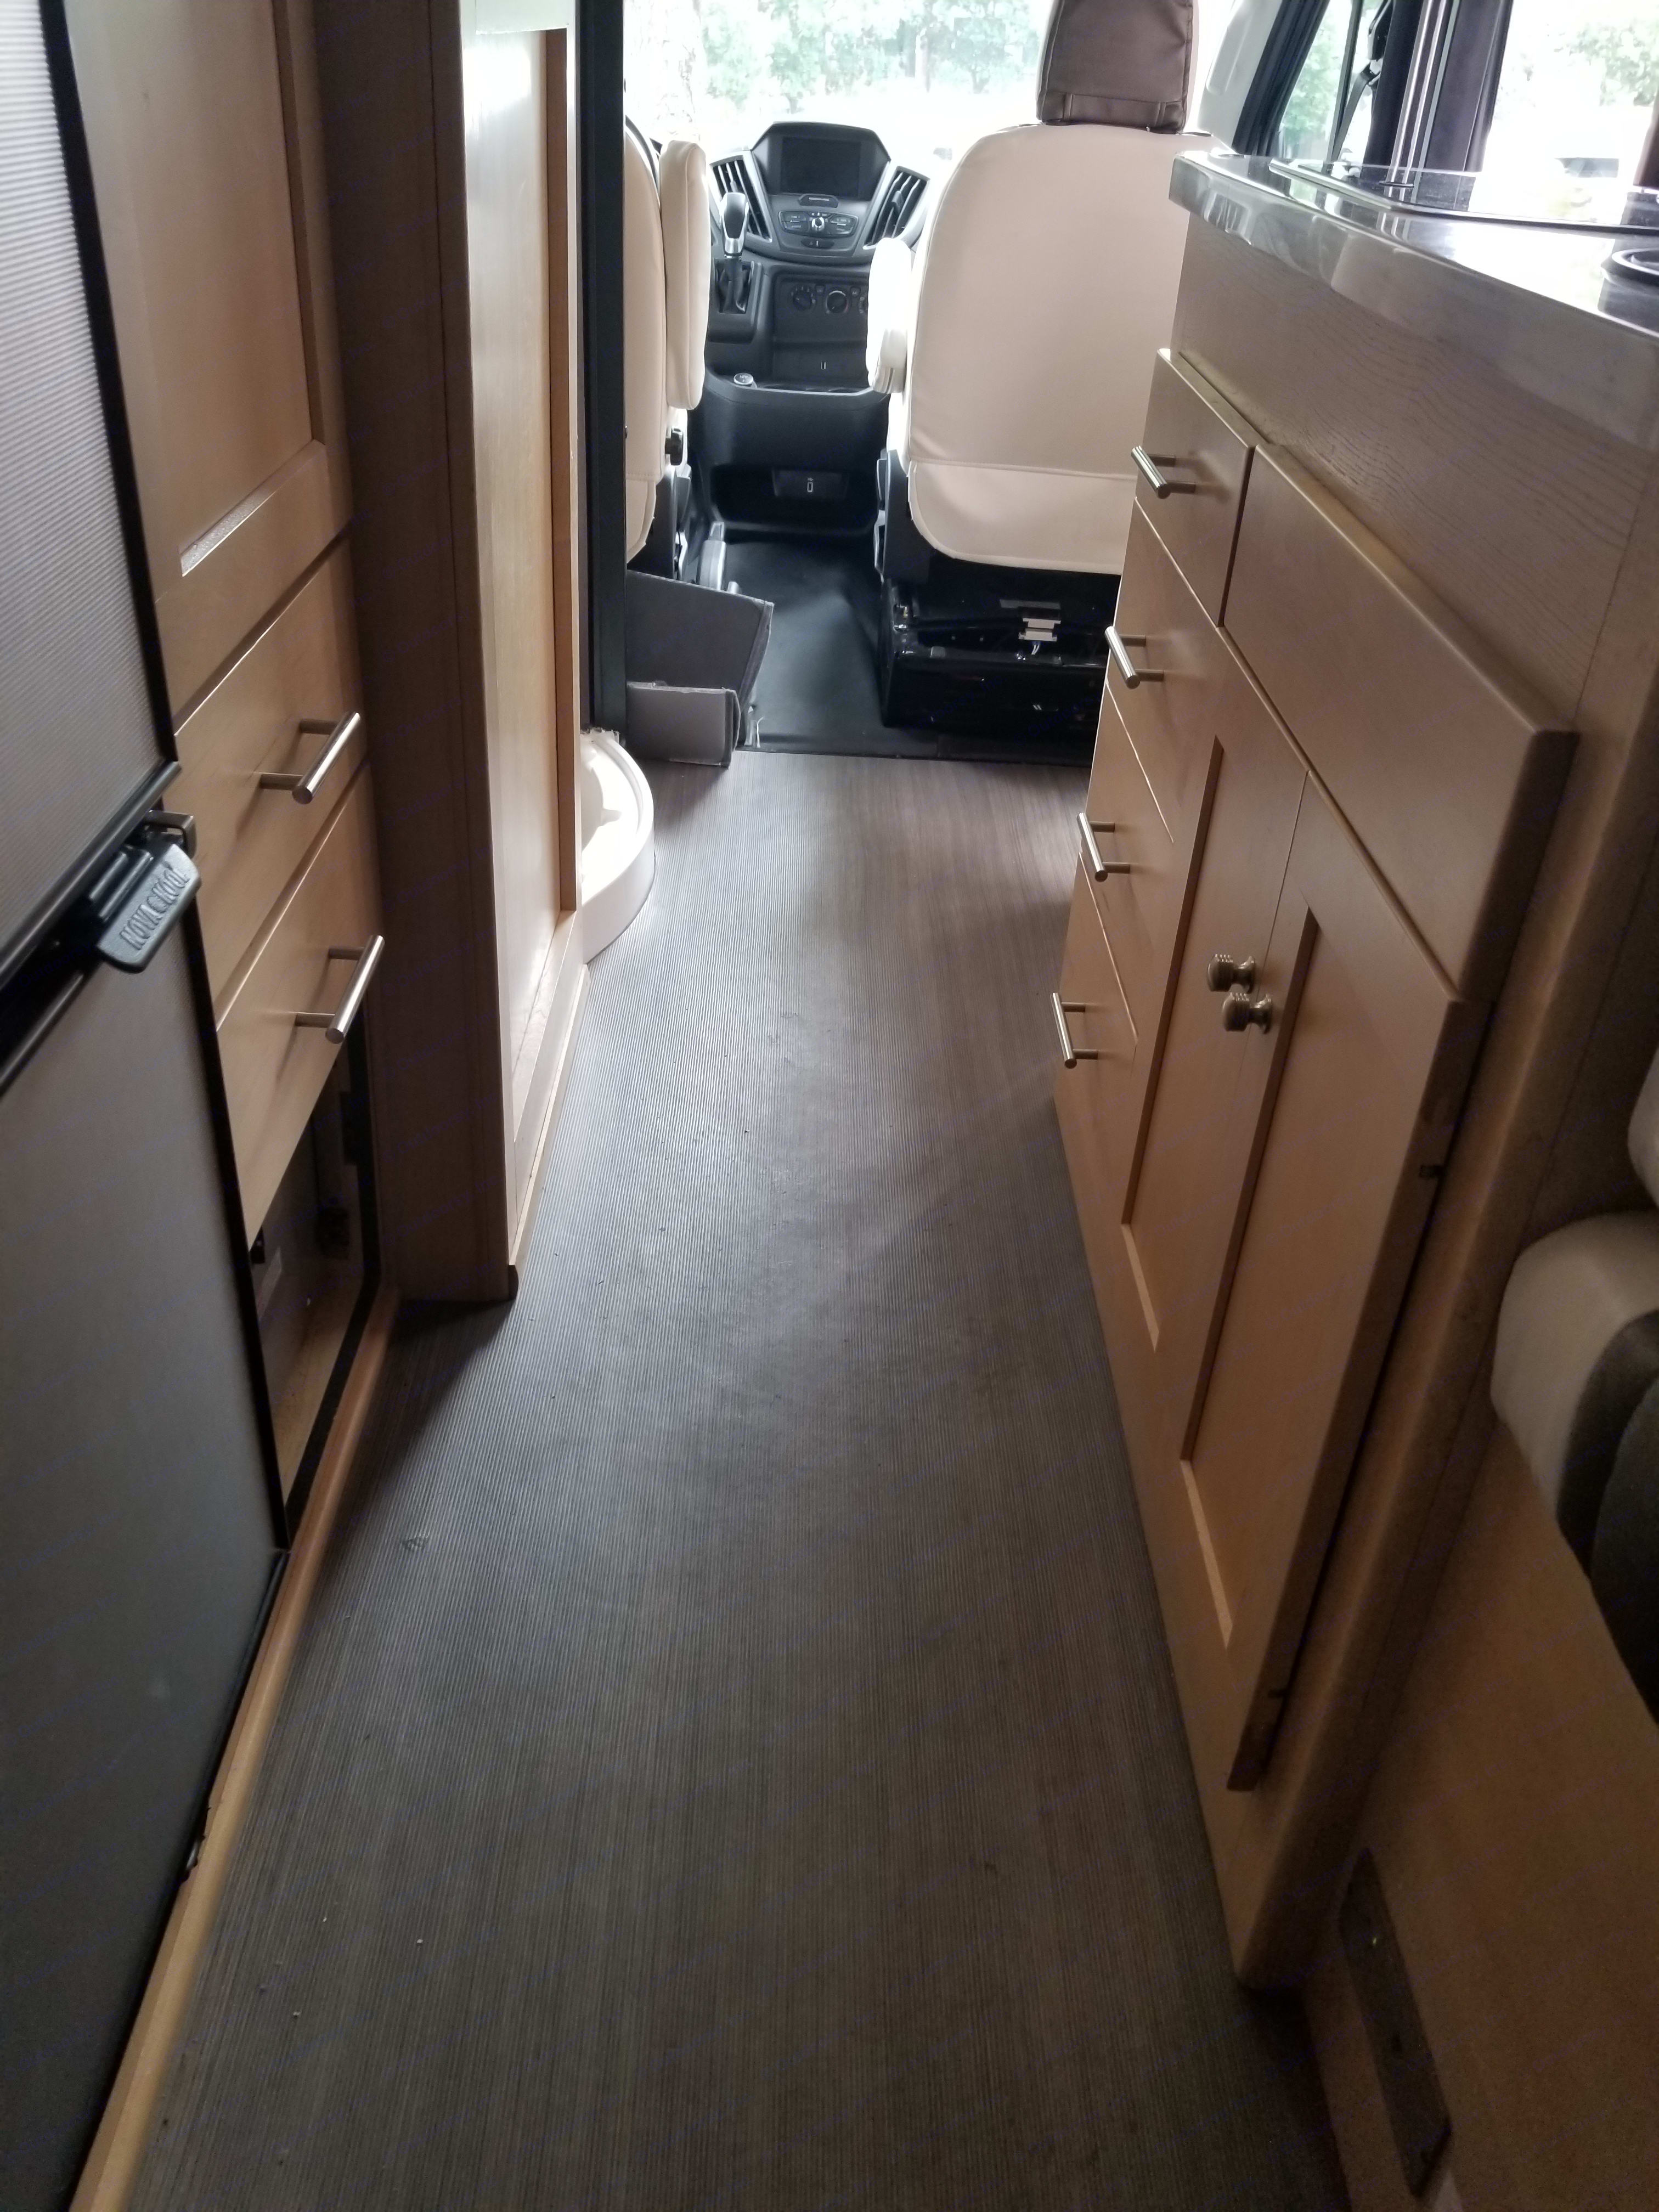 Standing at the rear of the RV looking towards the cockpit.  To the left is the fridge, wardrobe closet, and drawers for storage.  To the right is the kitchen area.. Winnebago Paseo 2017